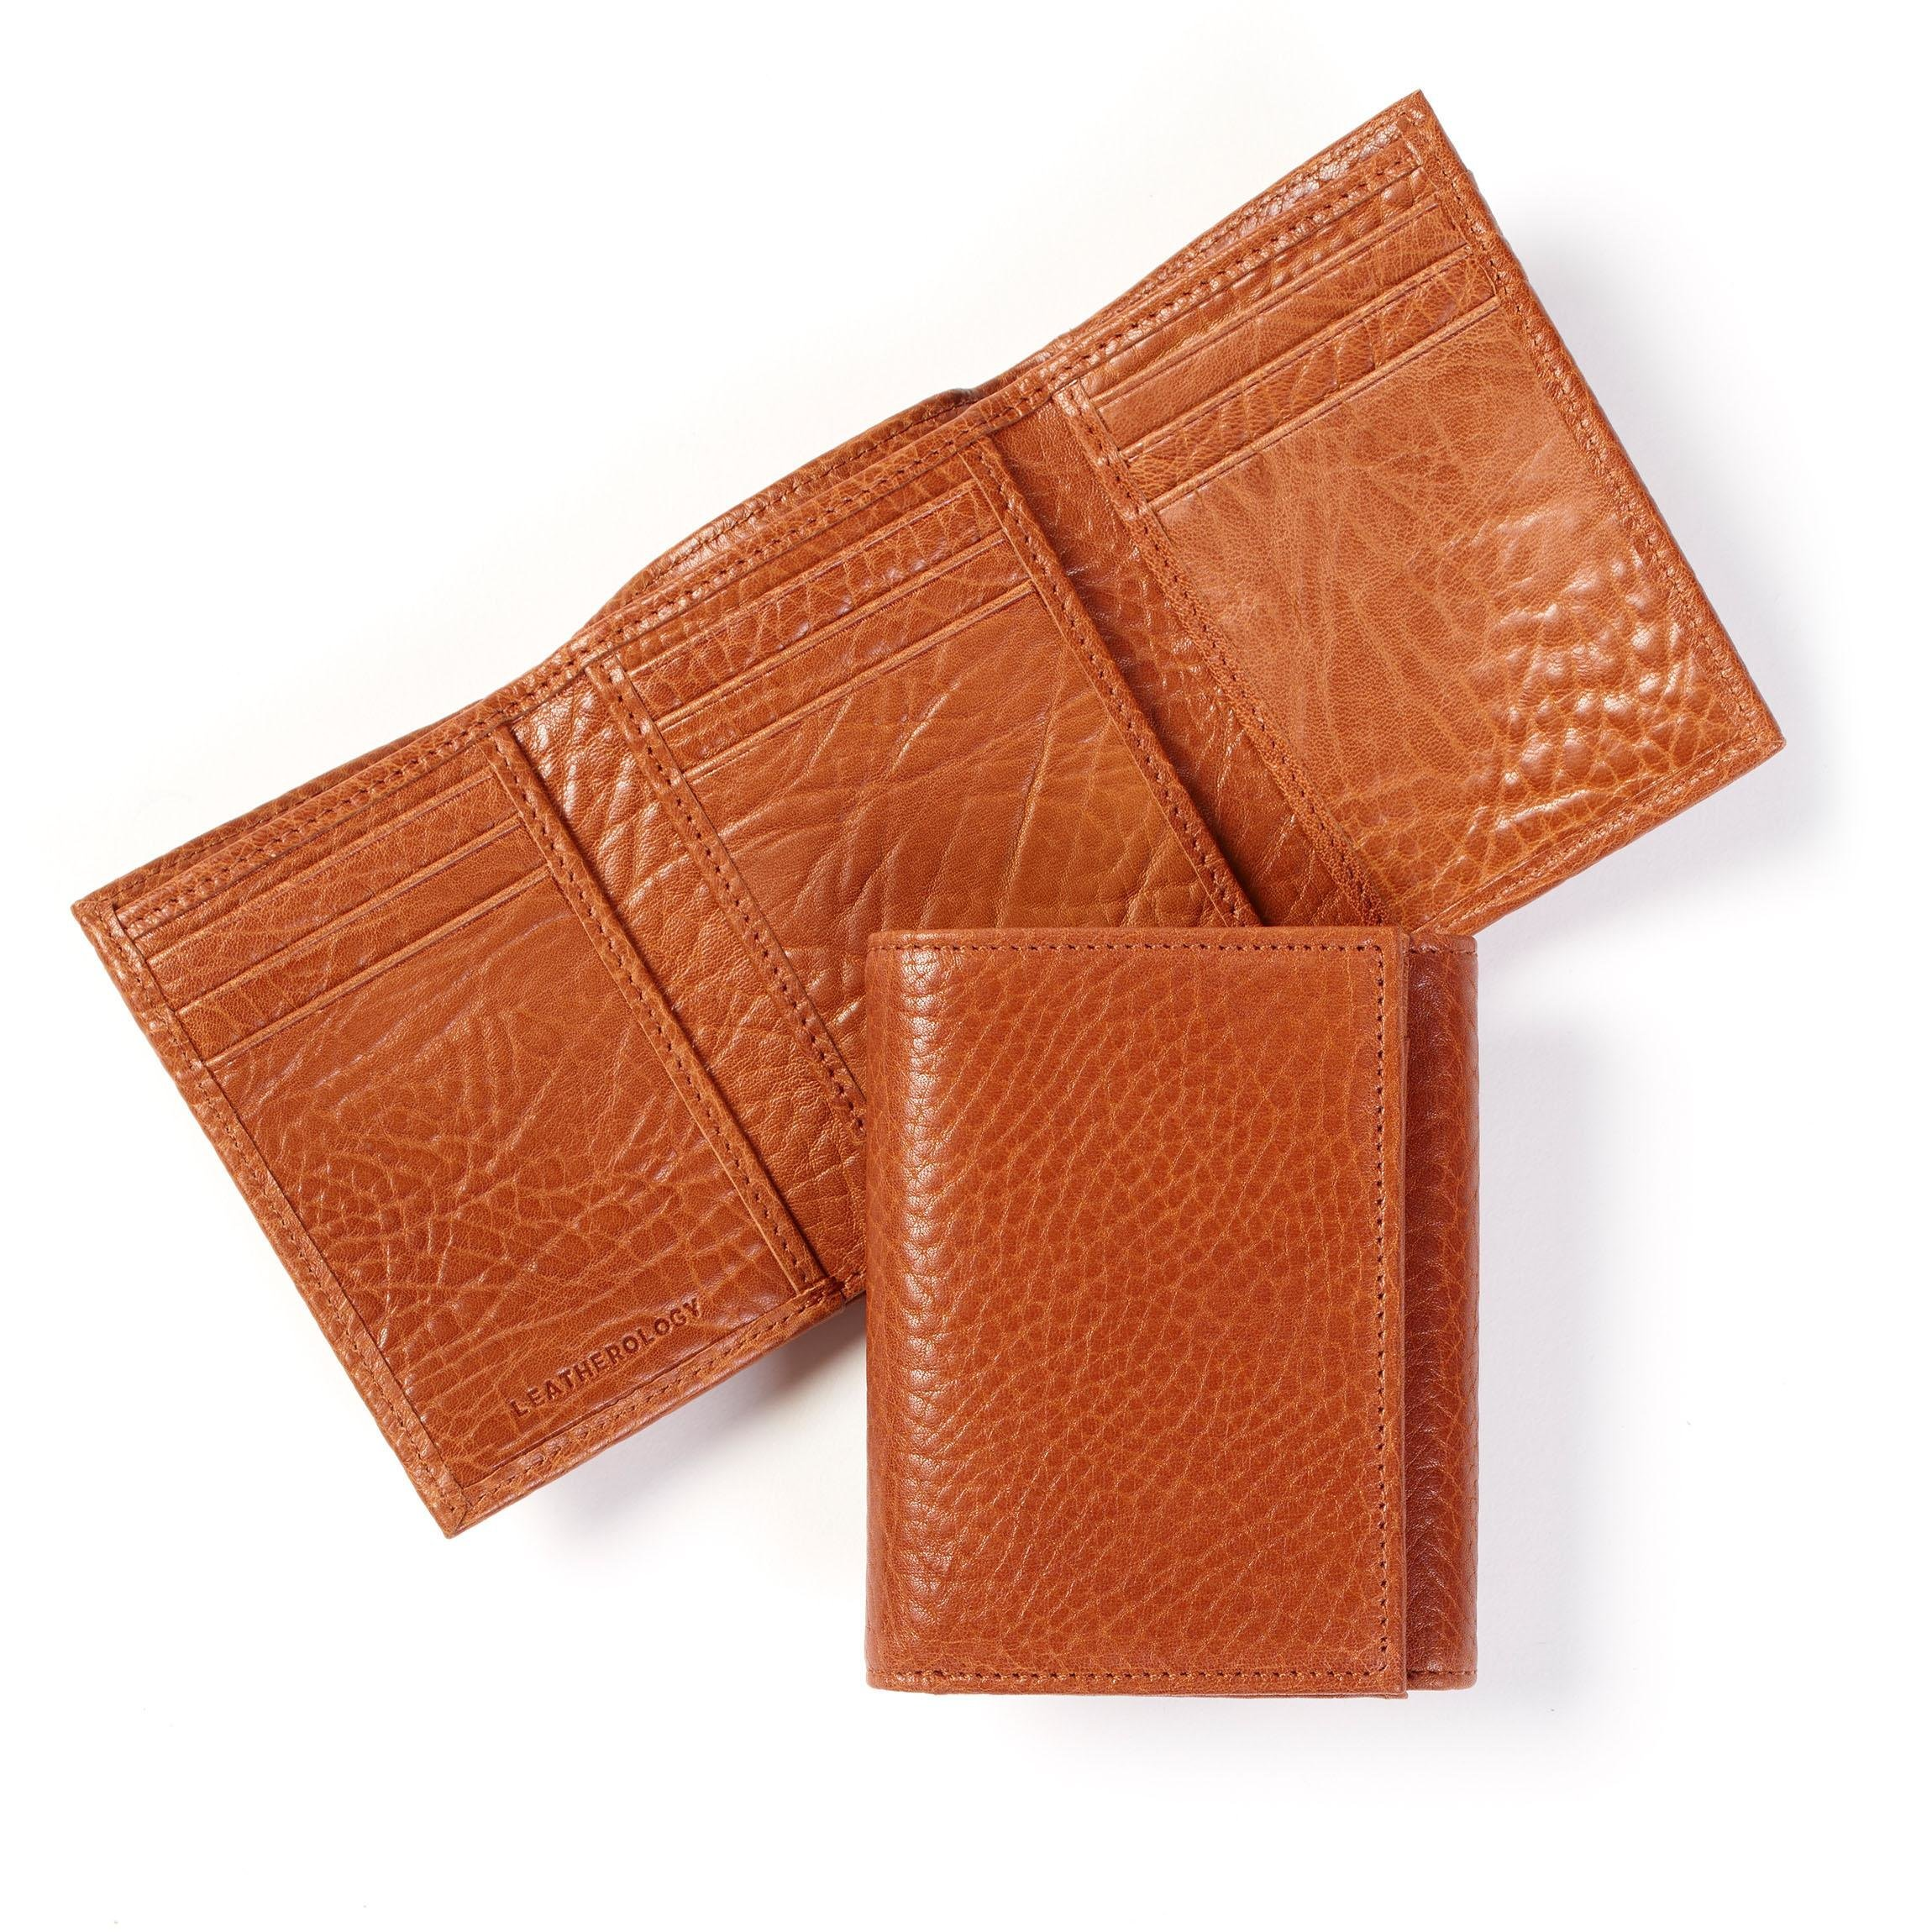 Leatherology Men's Standard Trifold Wallet with ID Window - RFID Available - Italian Leather - Whiskey (brown)